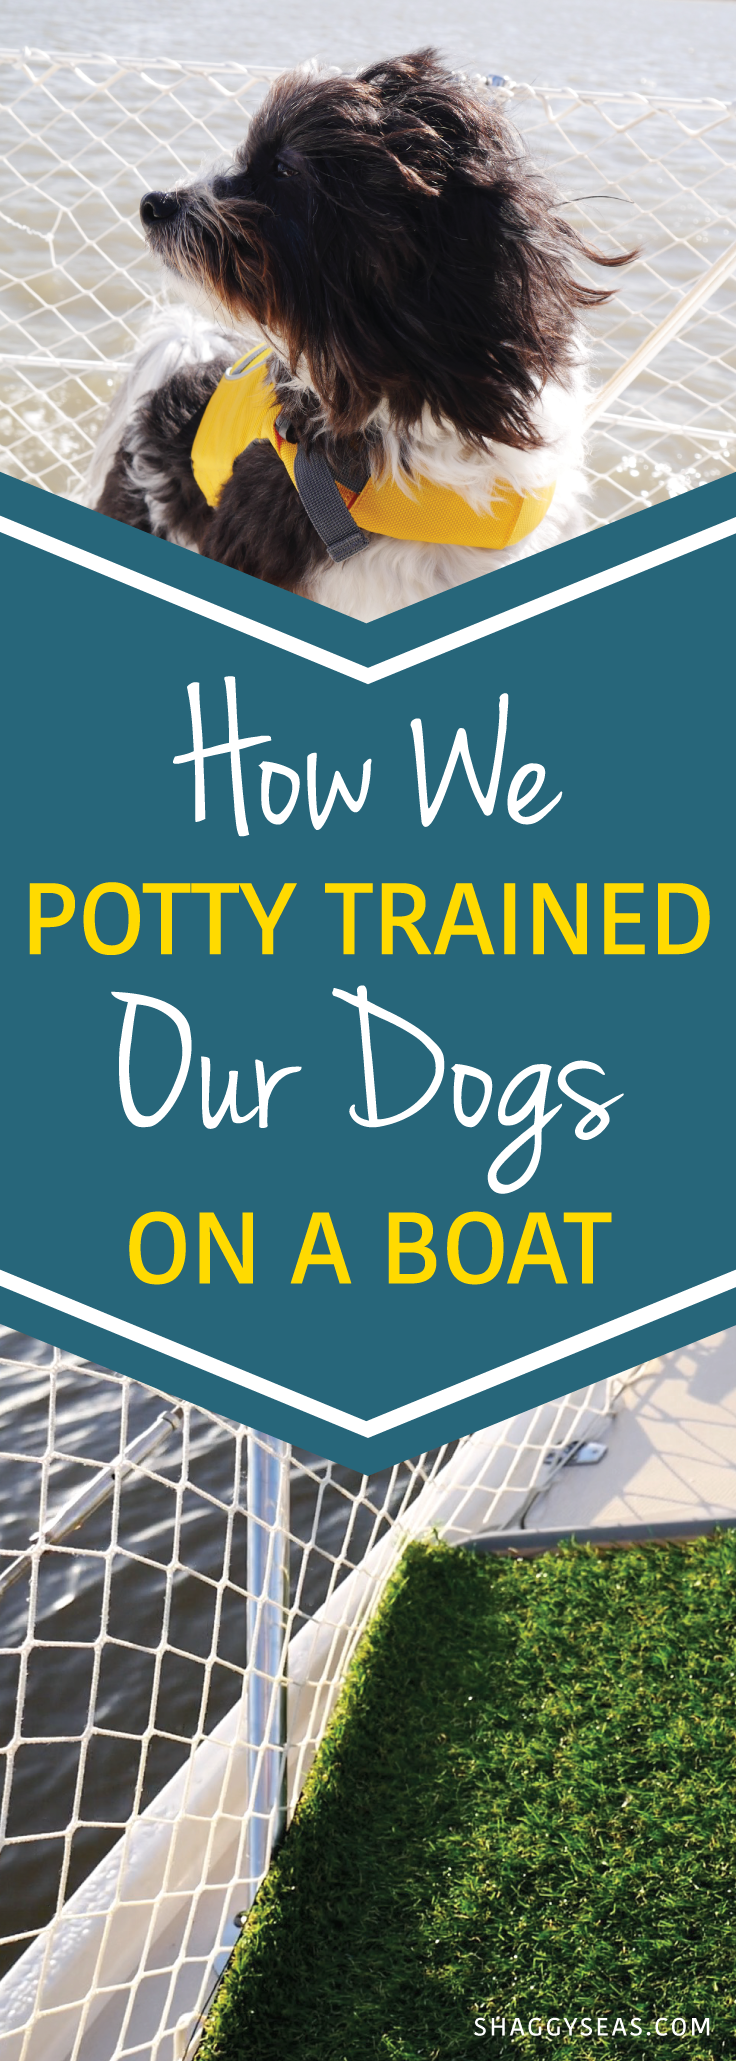 """How We Potty Trained our Dogs on a Boat - Ever wondered how to train your dog to """"go"""" on a boat? Learn how we trained our dogs so they can relieve themselves without us needing to dinghy to shore!"""